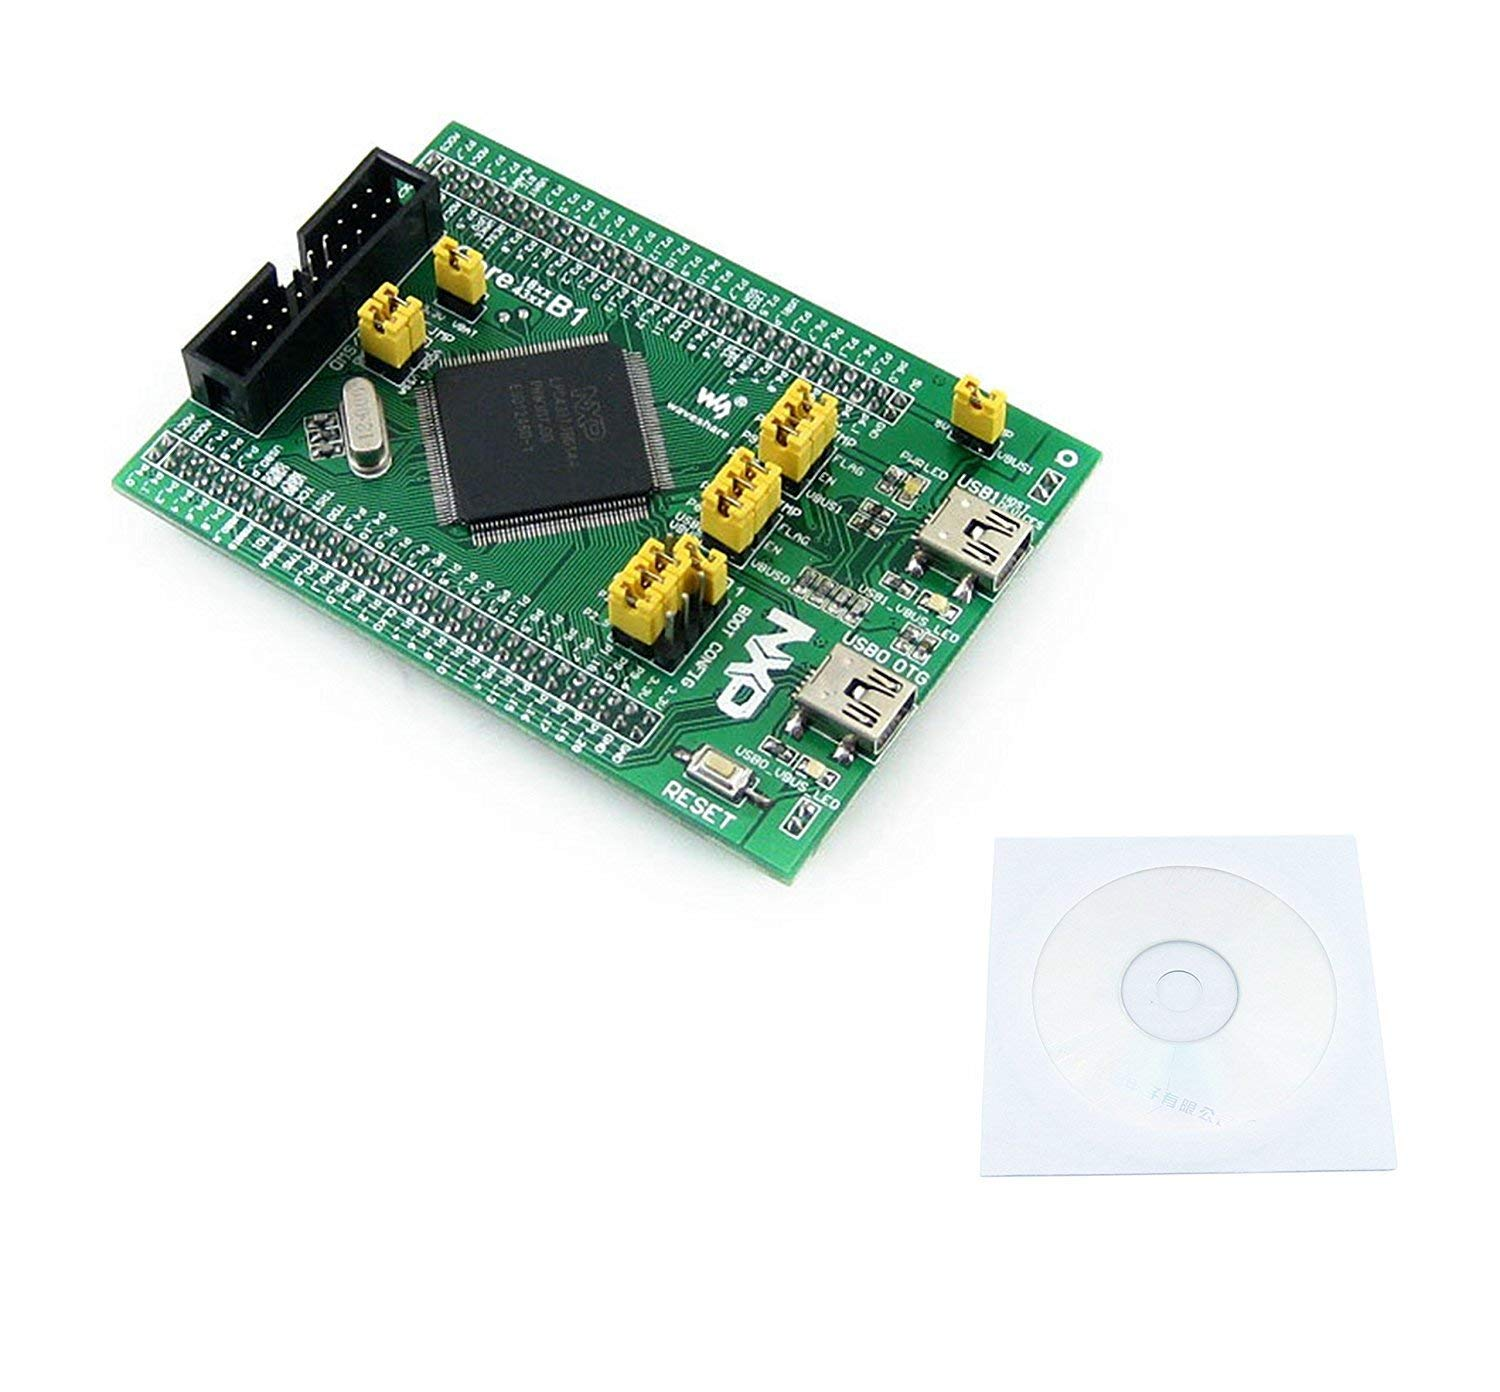 CQRobot LPC Core Board Core4337, Integrated MCU Basic Circuit, Such as Clock Circuit, USB Power Management, USB Interface, Etc. All I/O Ports are Accessible on Pin Headers.